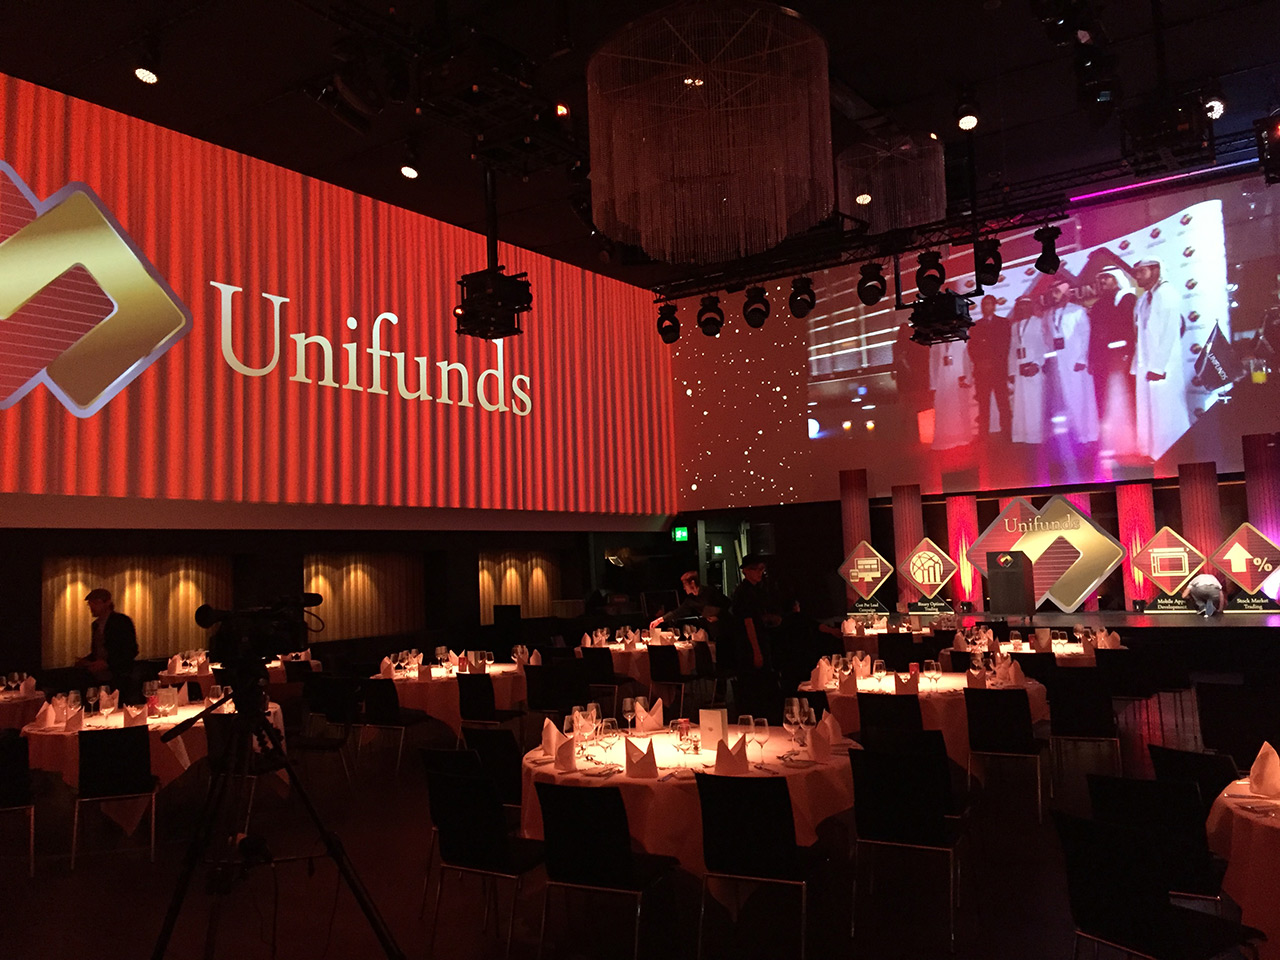 Events - Business Event Unifunds